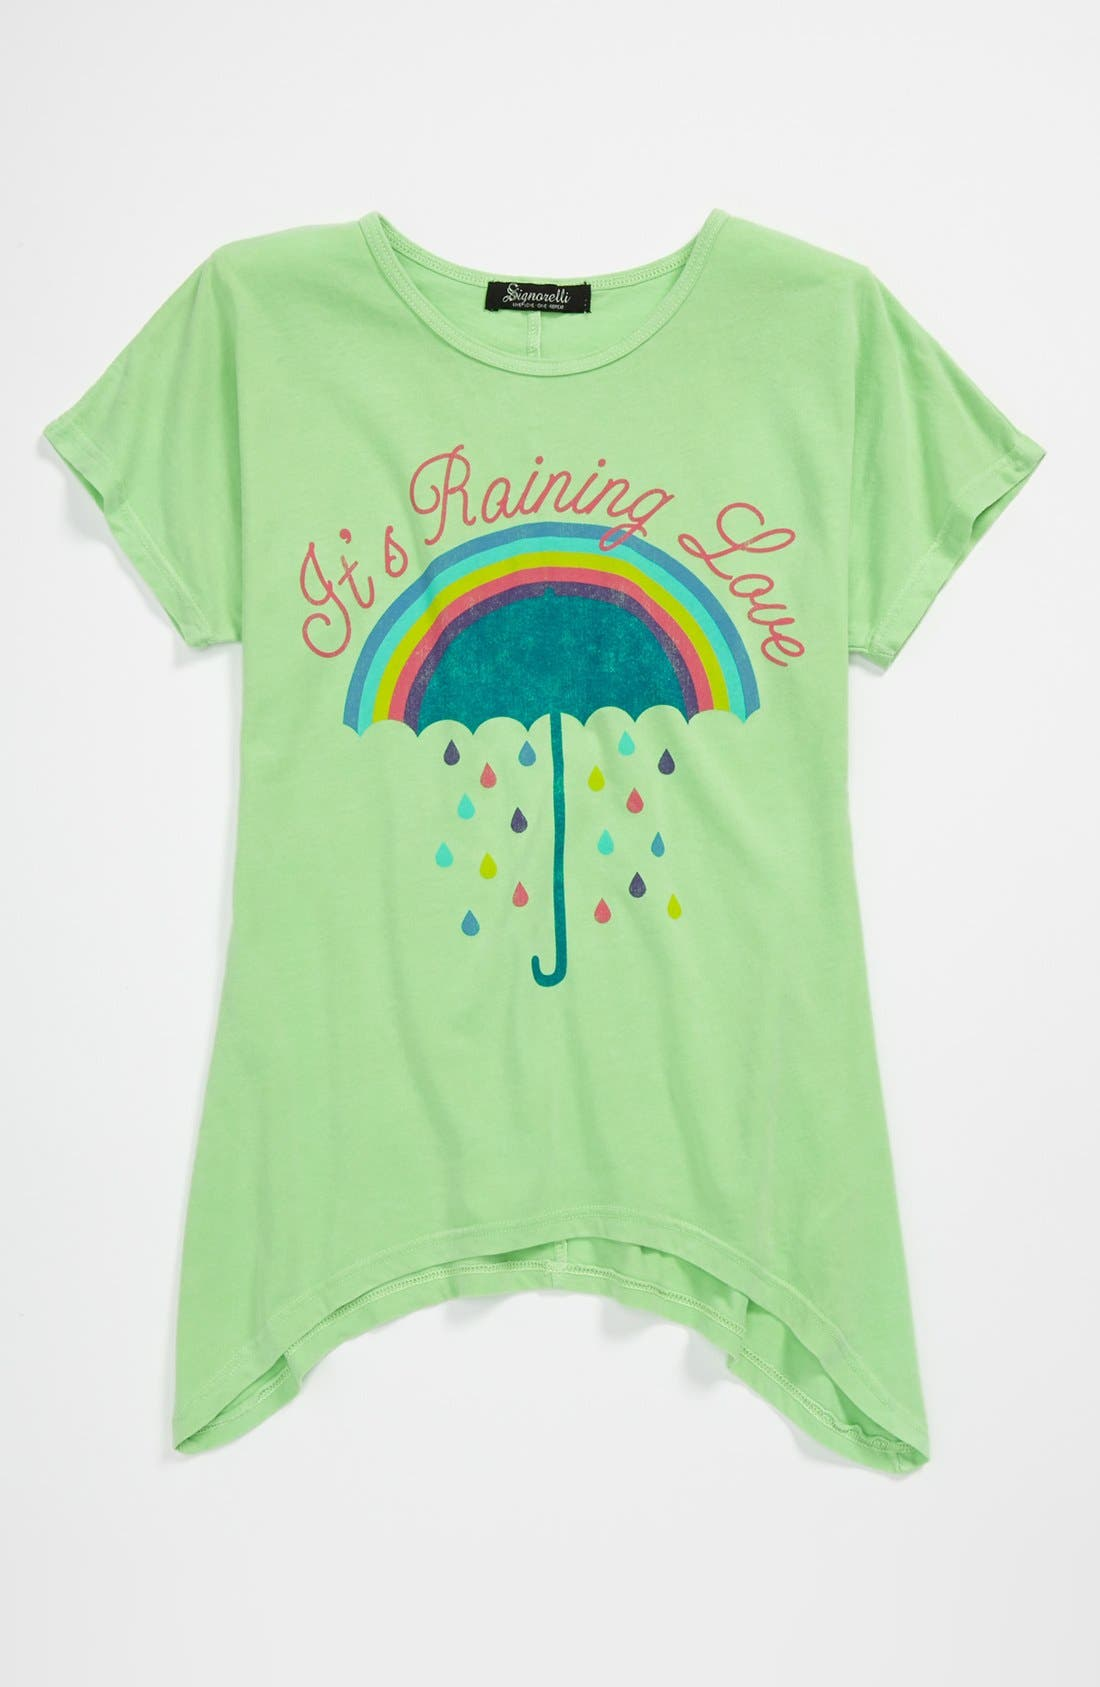 Main Image - Signorelli Rainbow Graphic Tee (Big Girls)